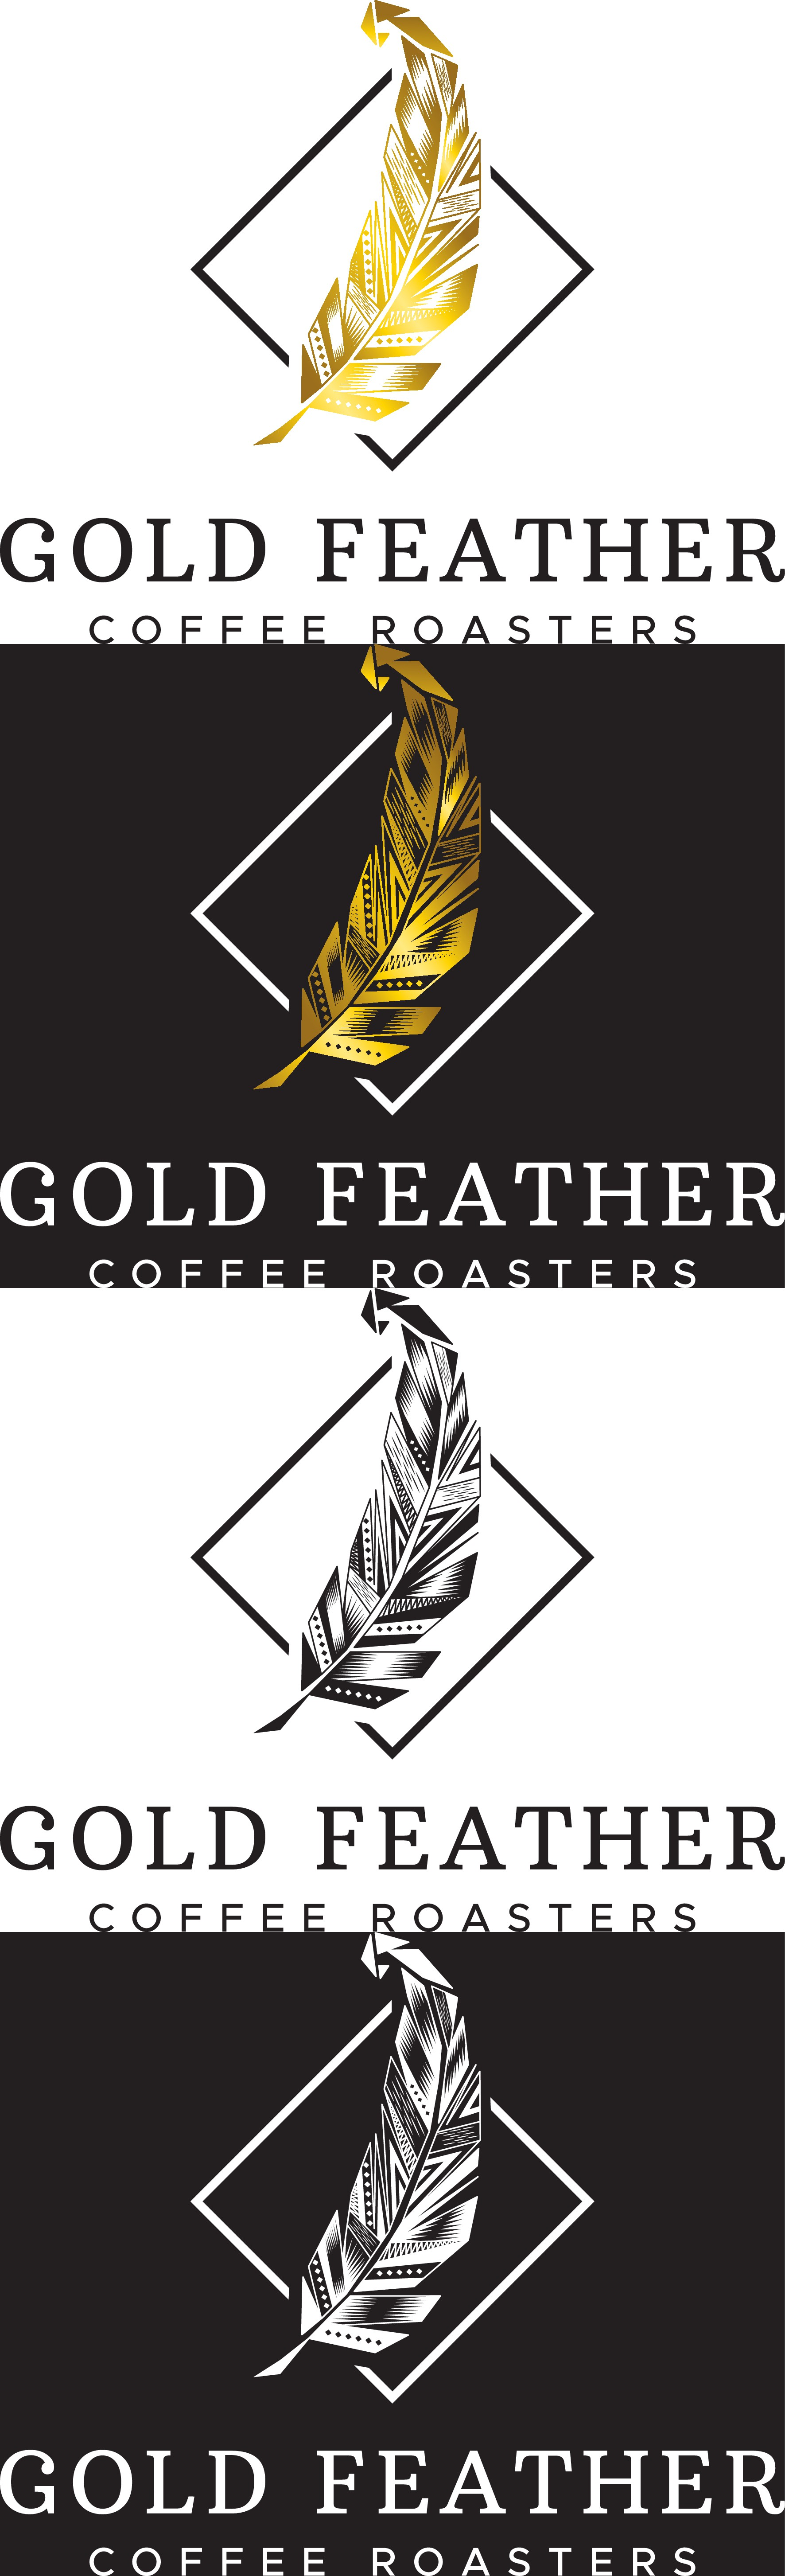 design a young, but sophisticated logo for a coffee roasting company